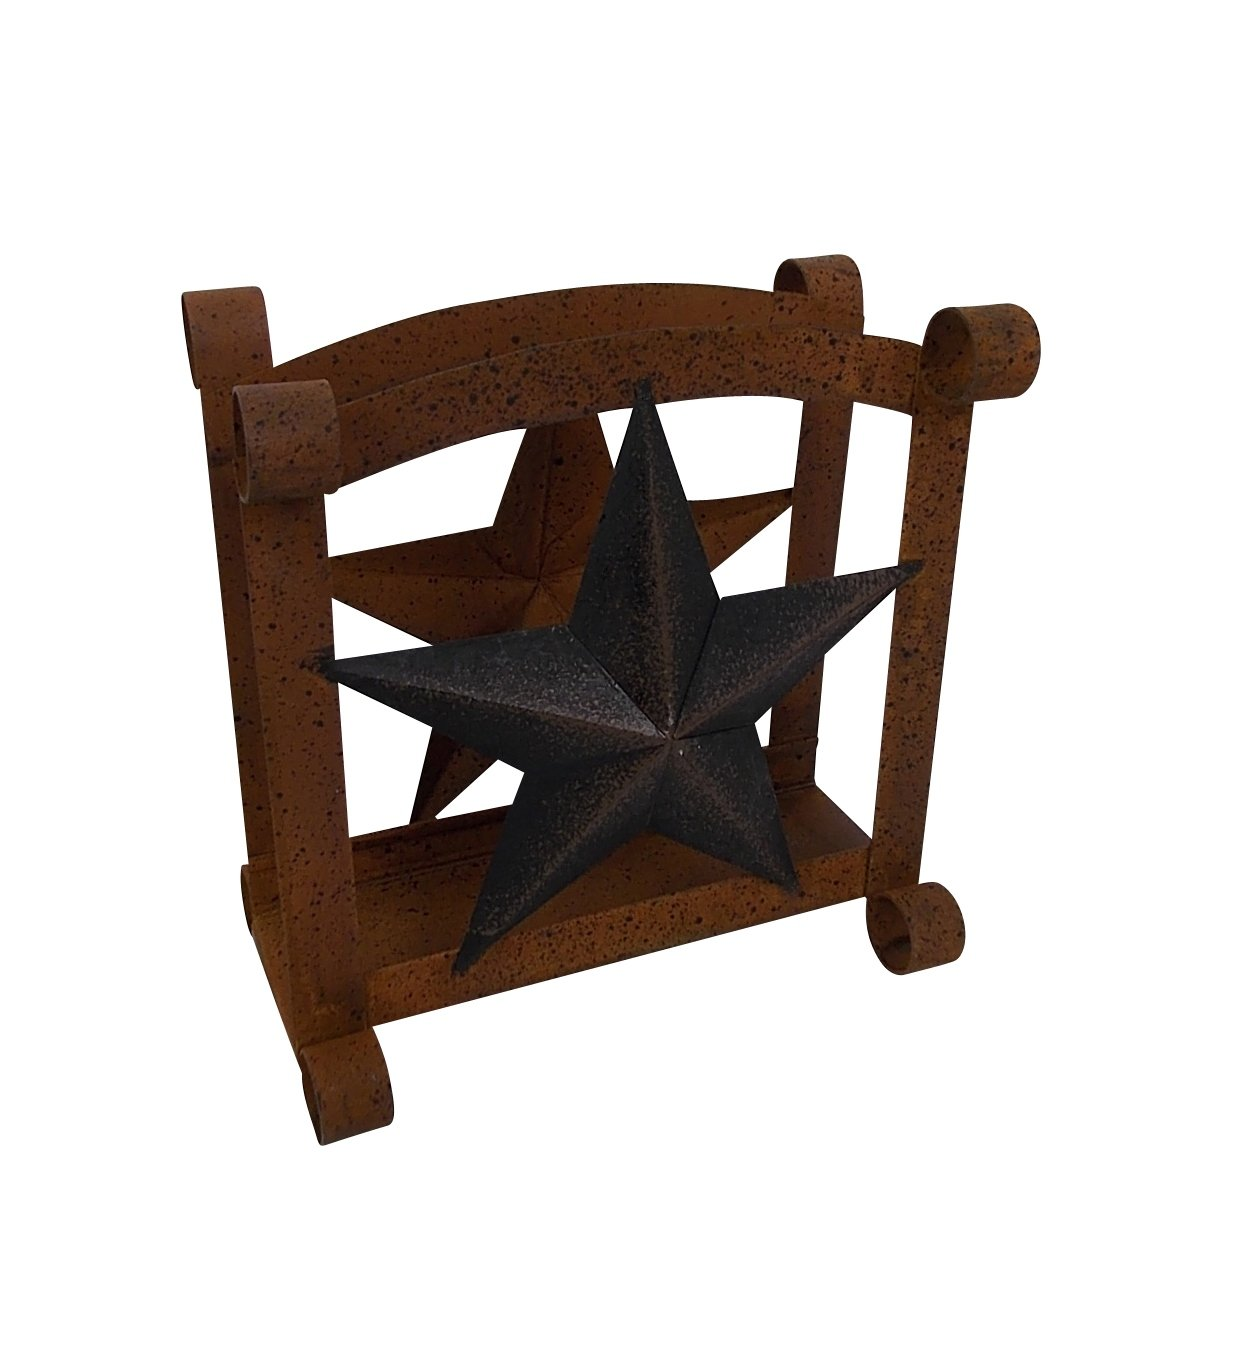 Craft Outlet Star Napkin Holder, 6 x 5 x 6.5-Inch, Rustic Craft Outlet Inc T1298